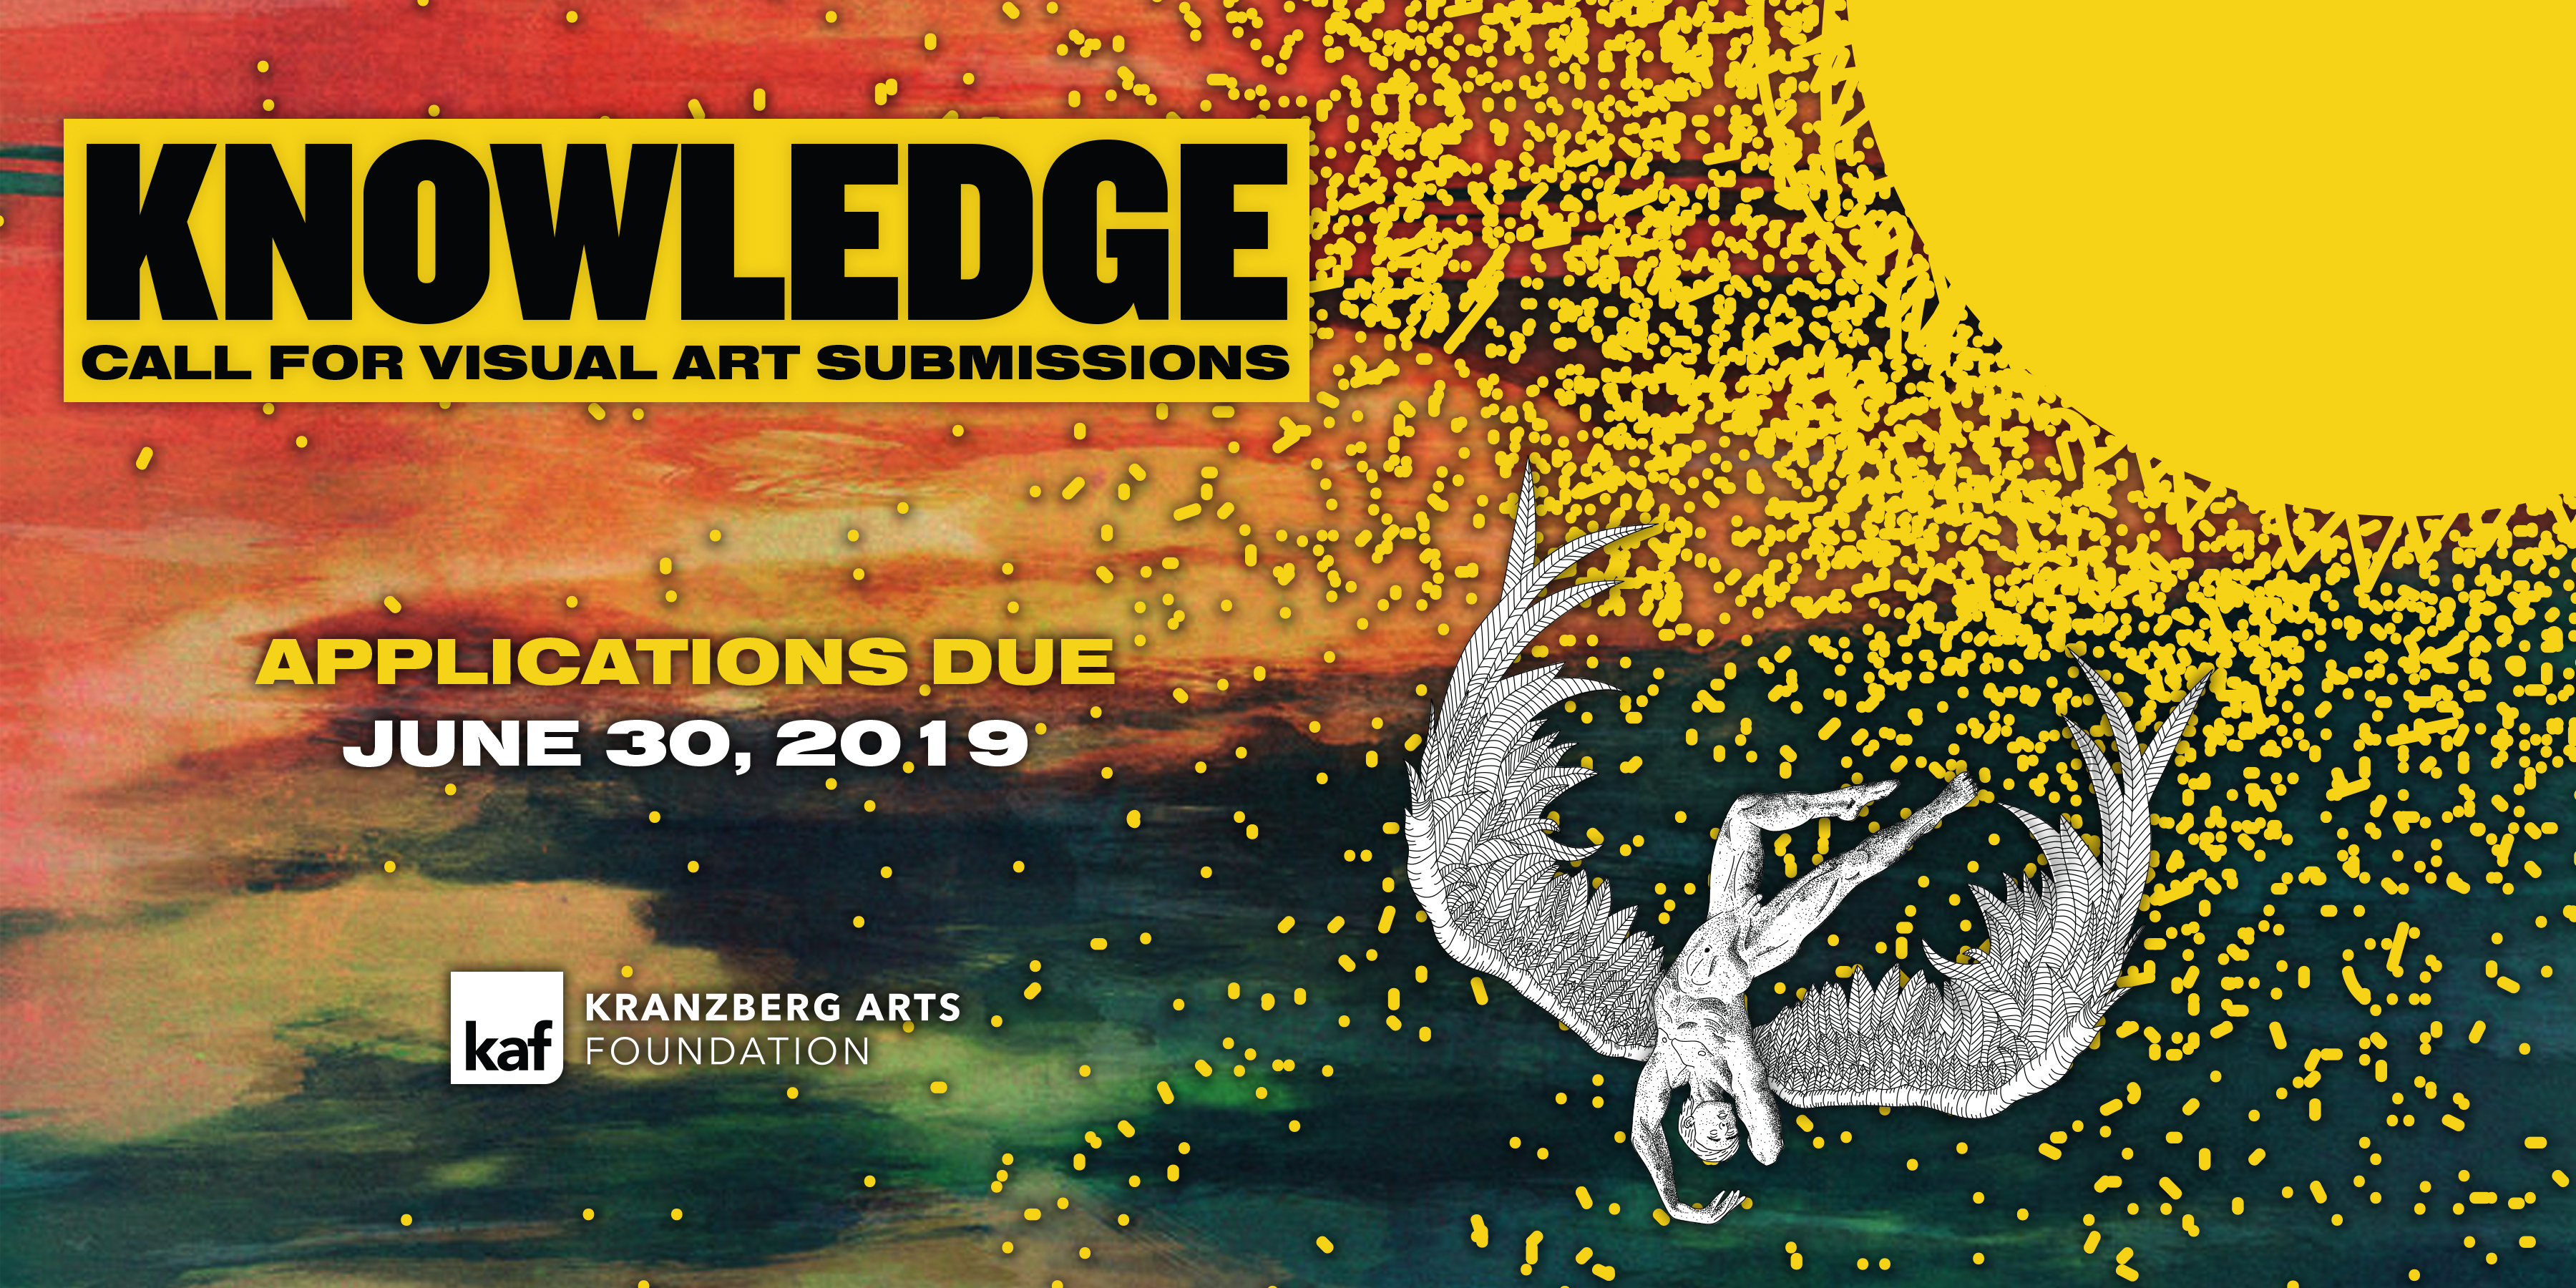 Gallery Submissions - Kranzberg Arts Foundation